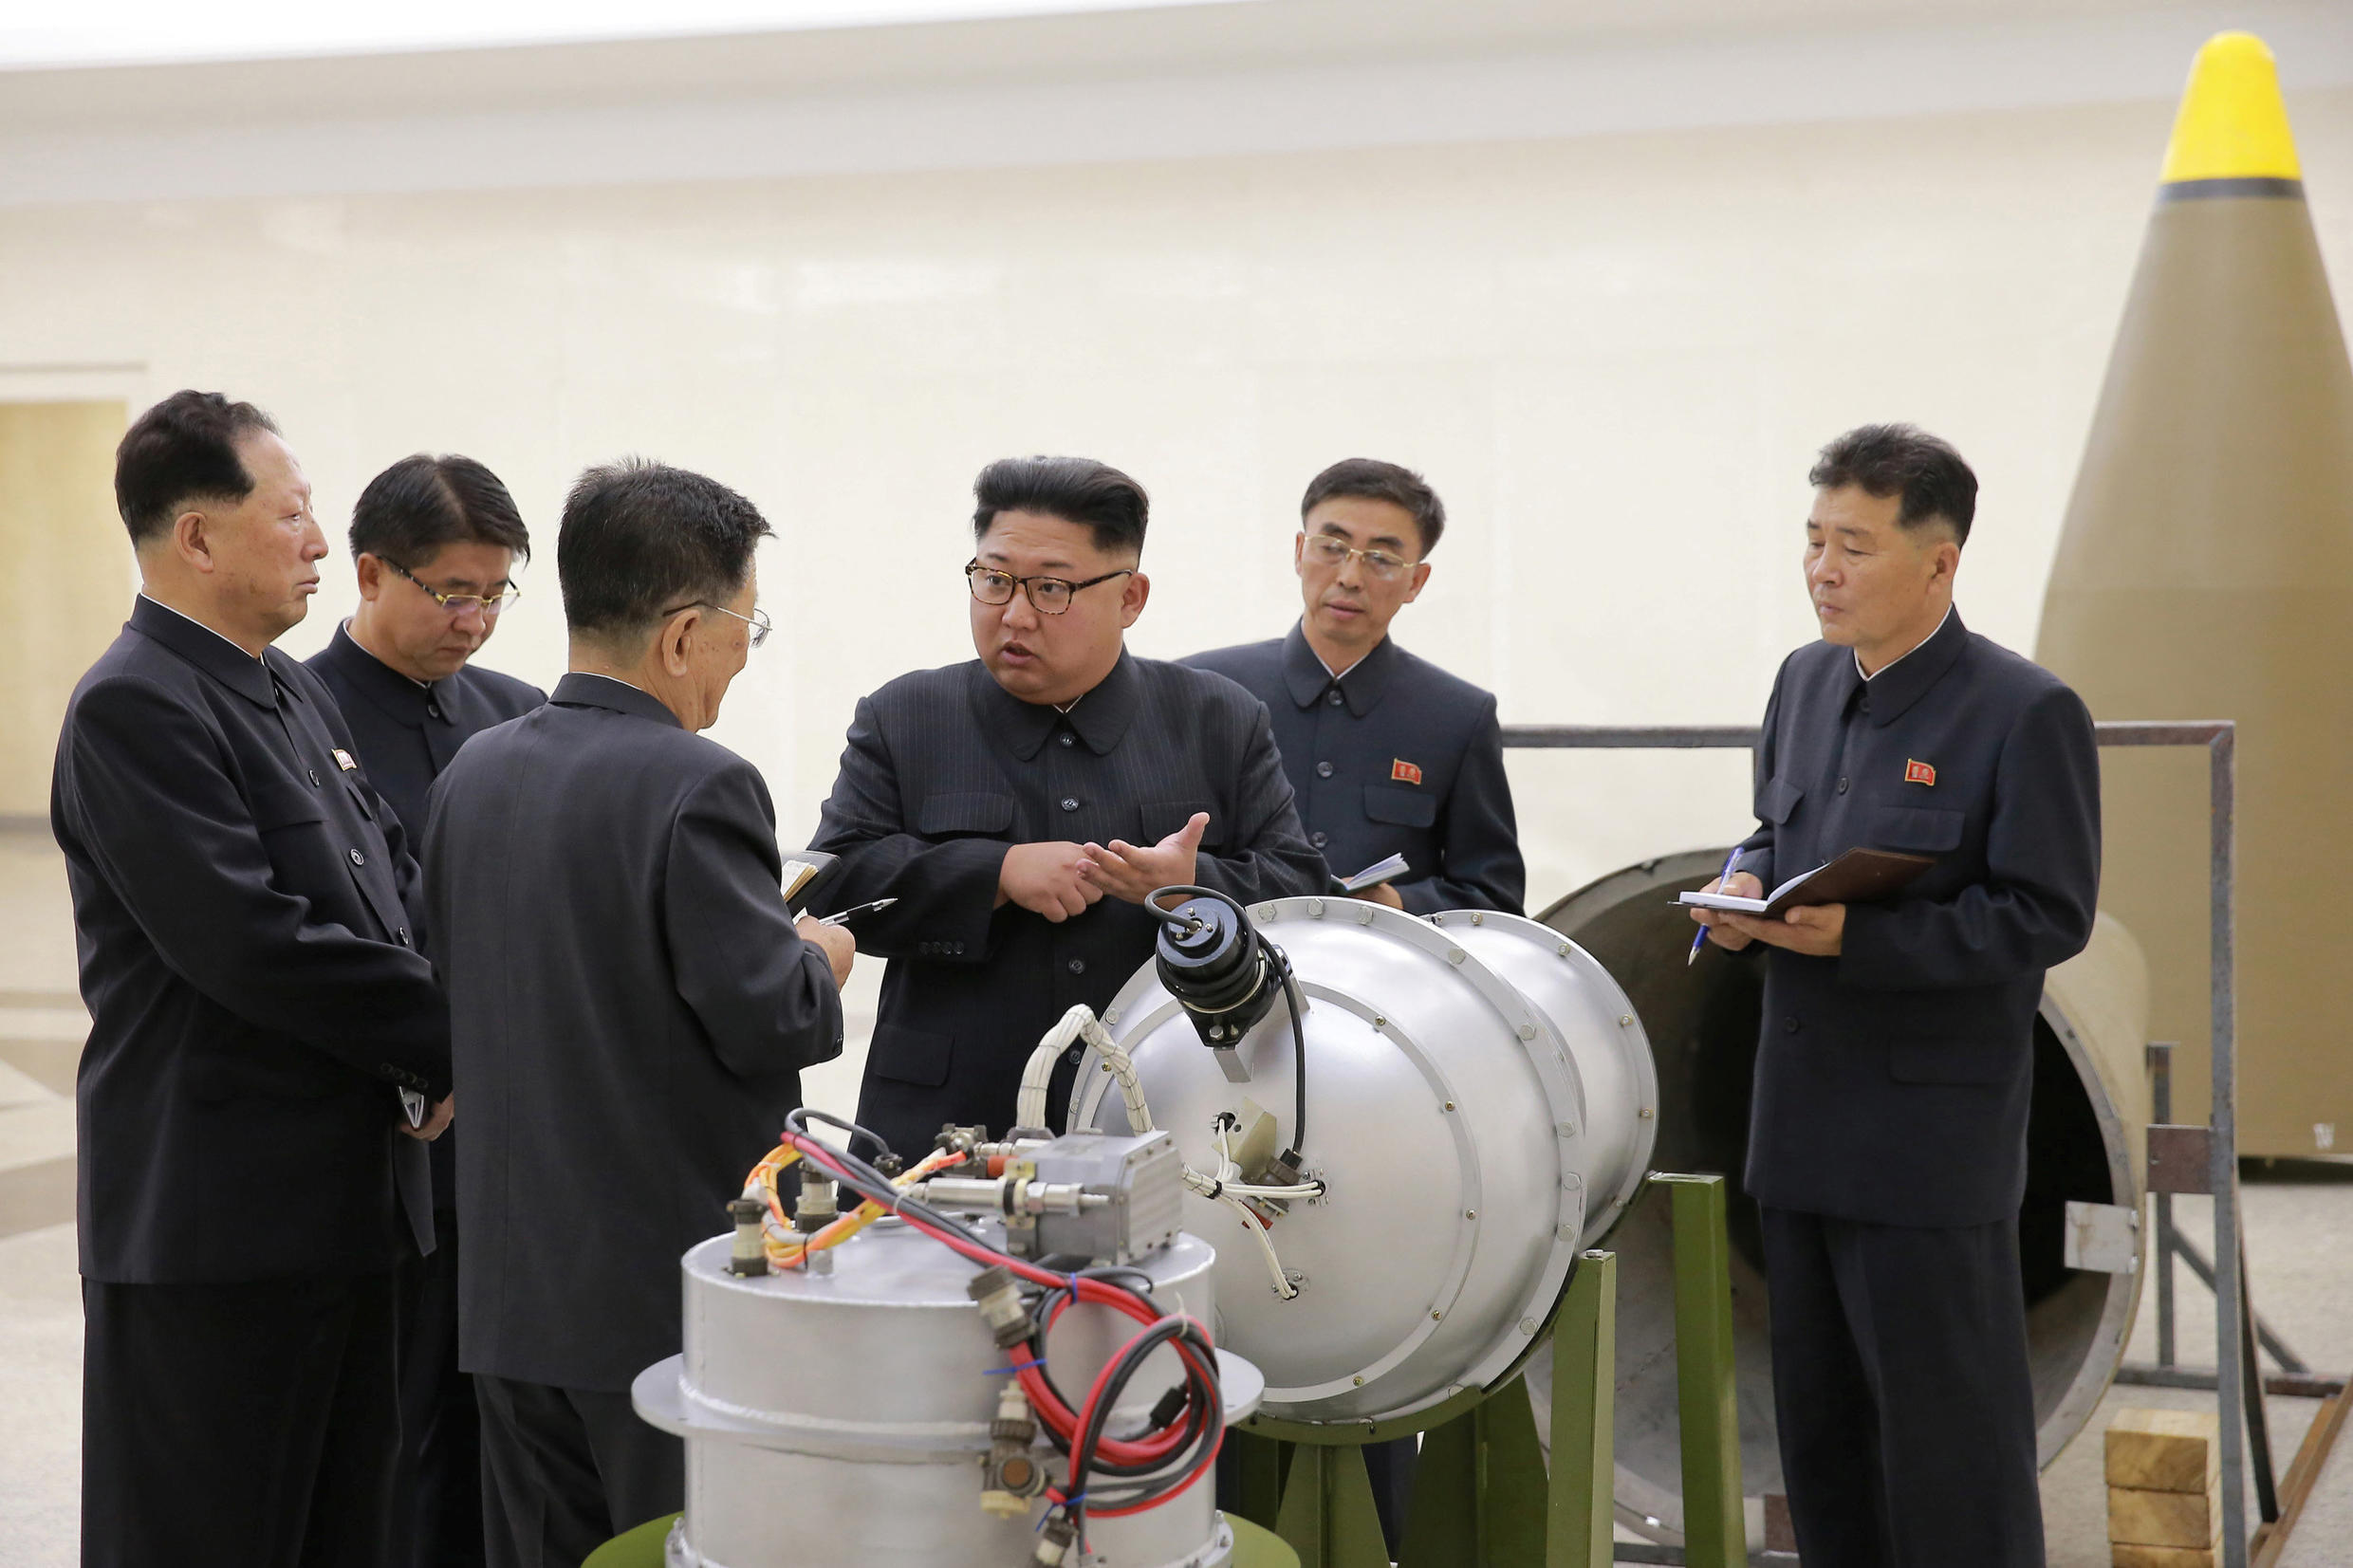 North Korean leader Kim Jong-un reportedly poses with a nuclear weapon, photo distributed by official KCNA agency